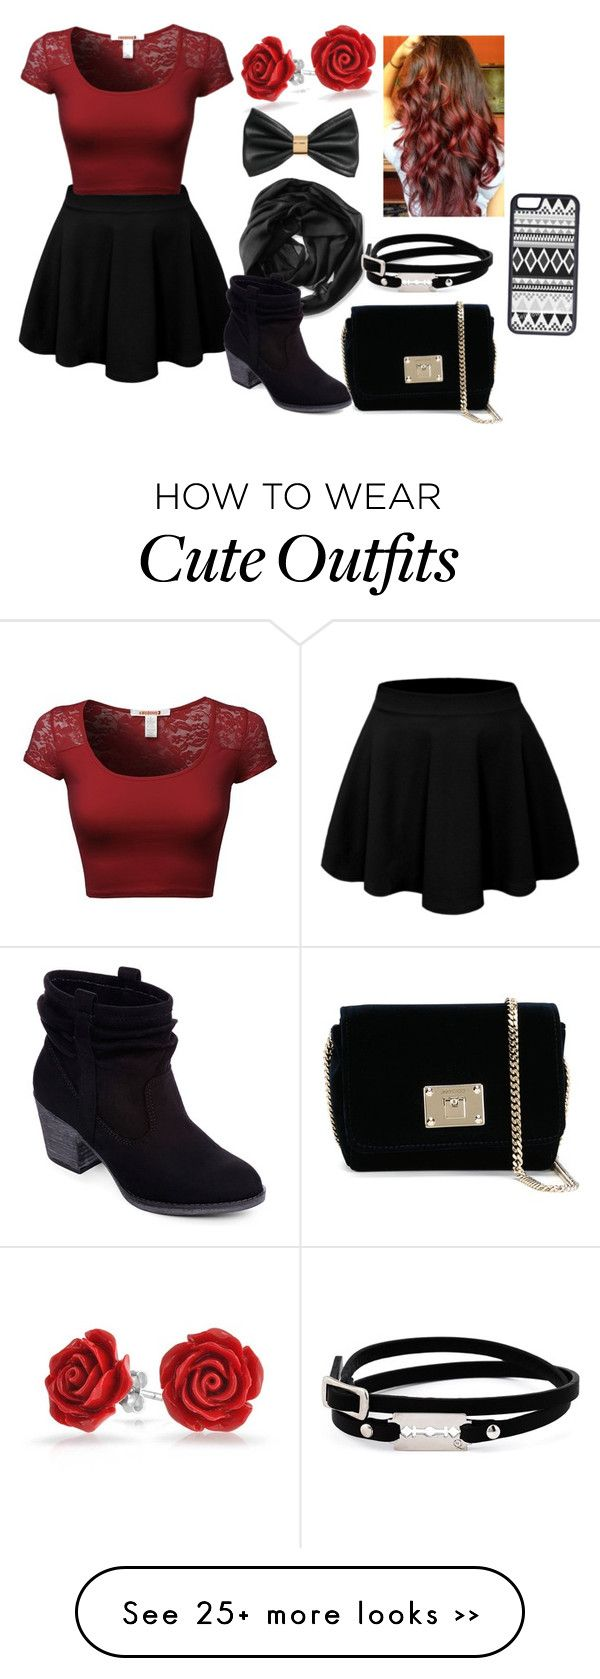 """school outfit"" by mikaangelicalatigay on Polyvore featuring moda, Bling Jewelry, H&M, Calvin Klein, McQ by Alexander McQueen, Rocket Dog, Jimmy Choo e CellPowerCases"